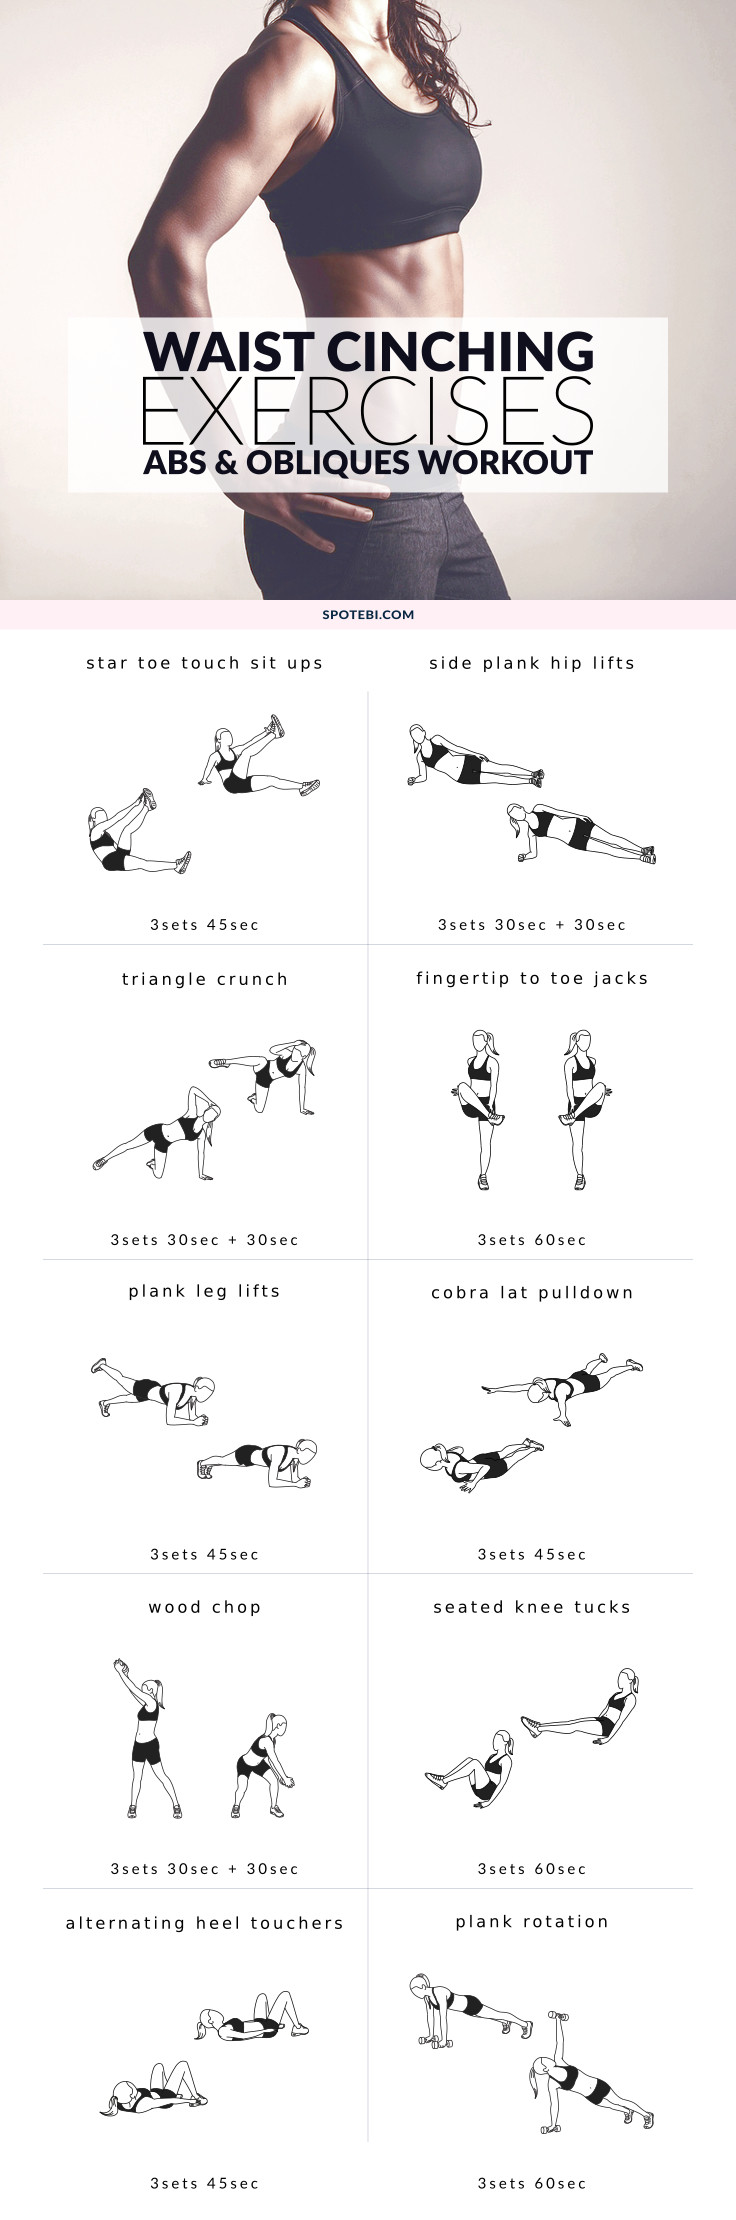 hight resolution of work your abs and obliques with these core exercises for women a 30 minute